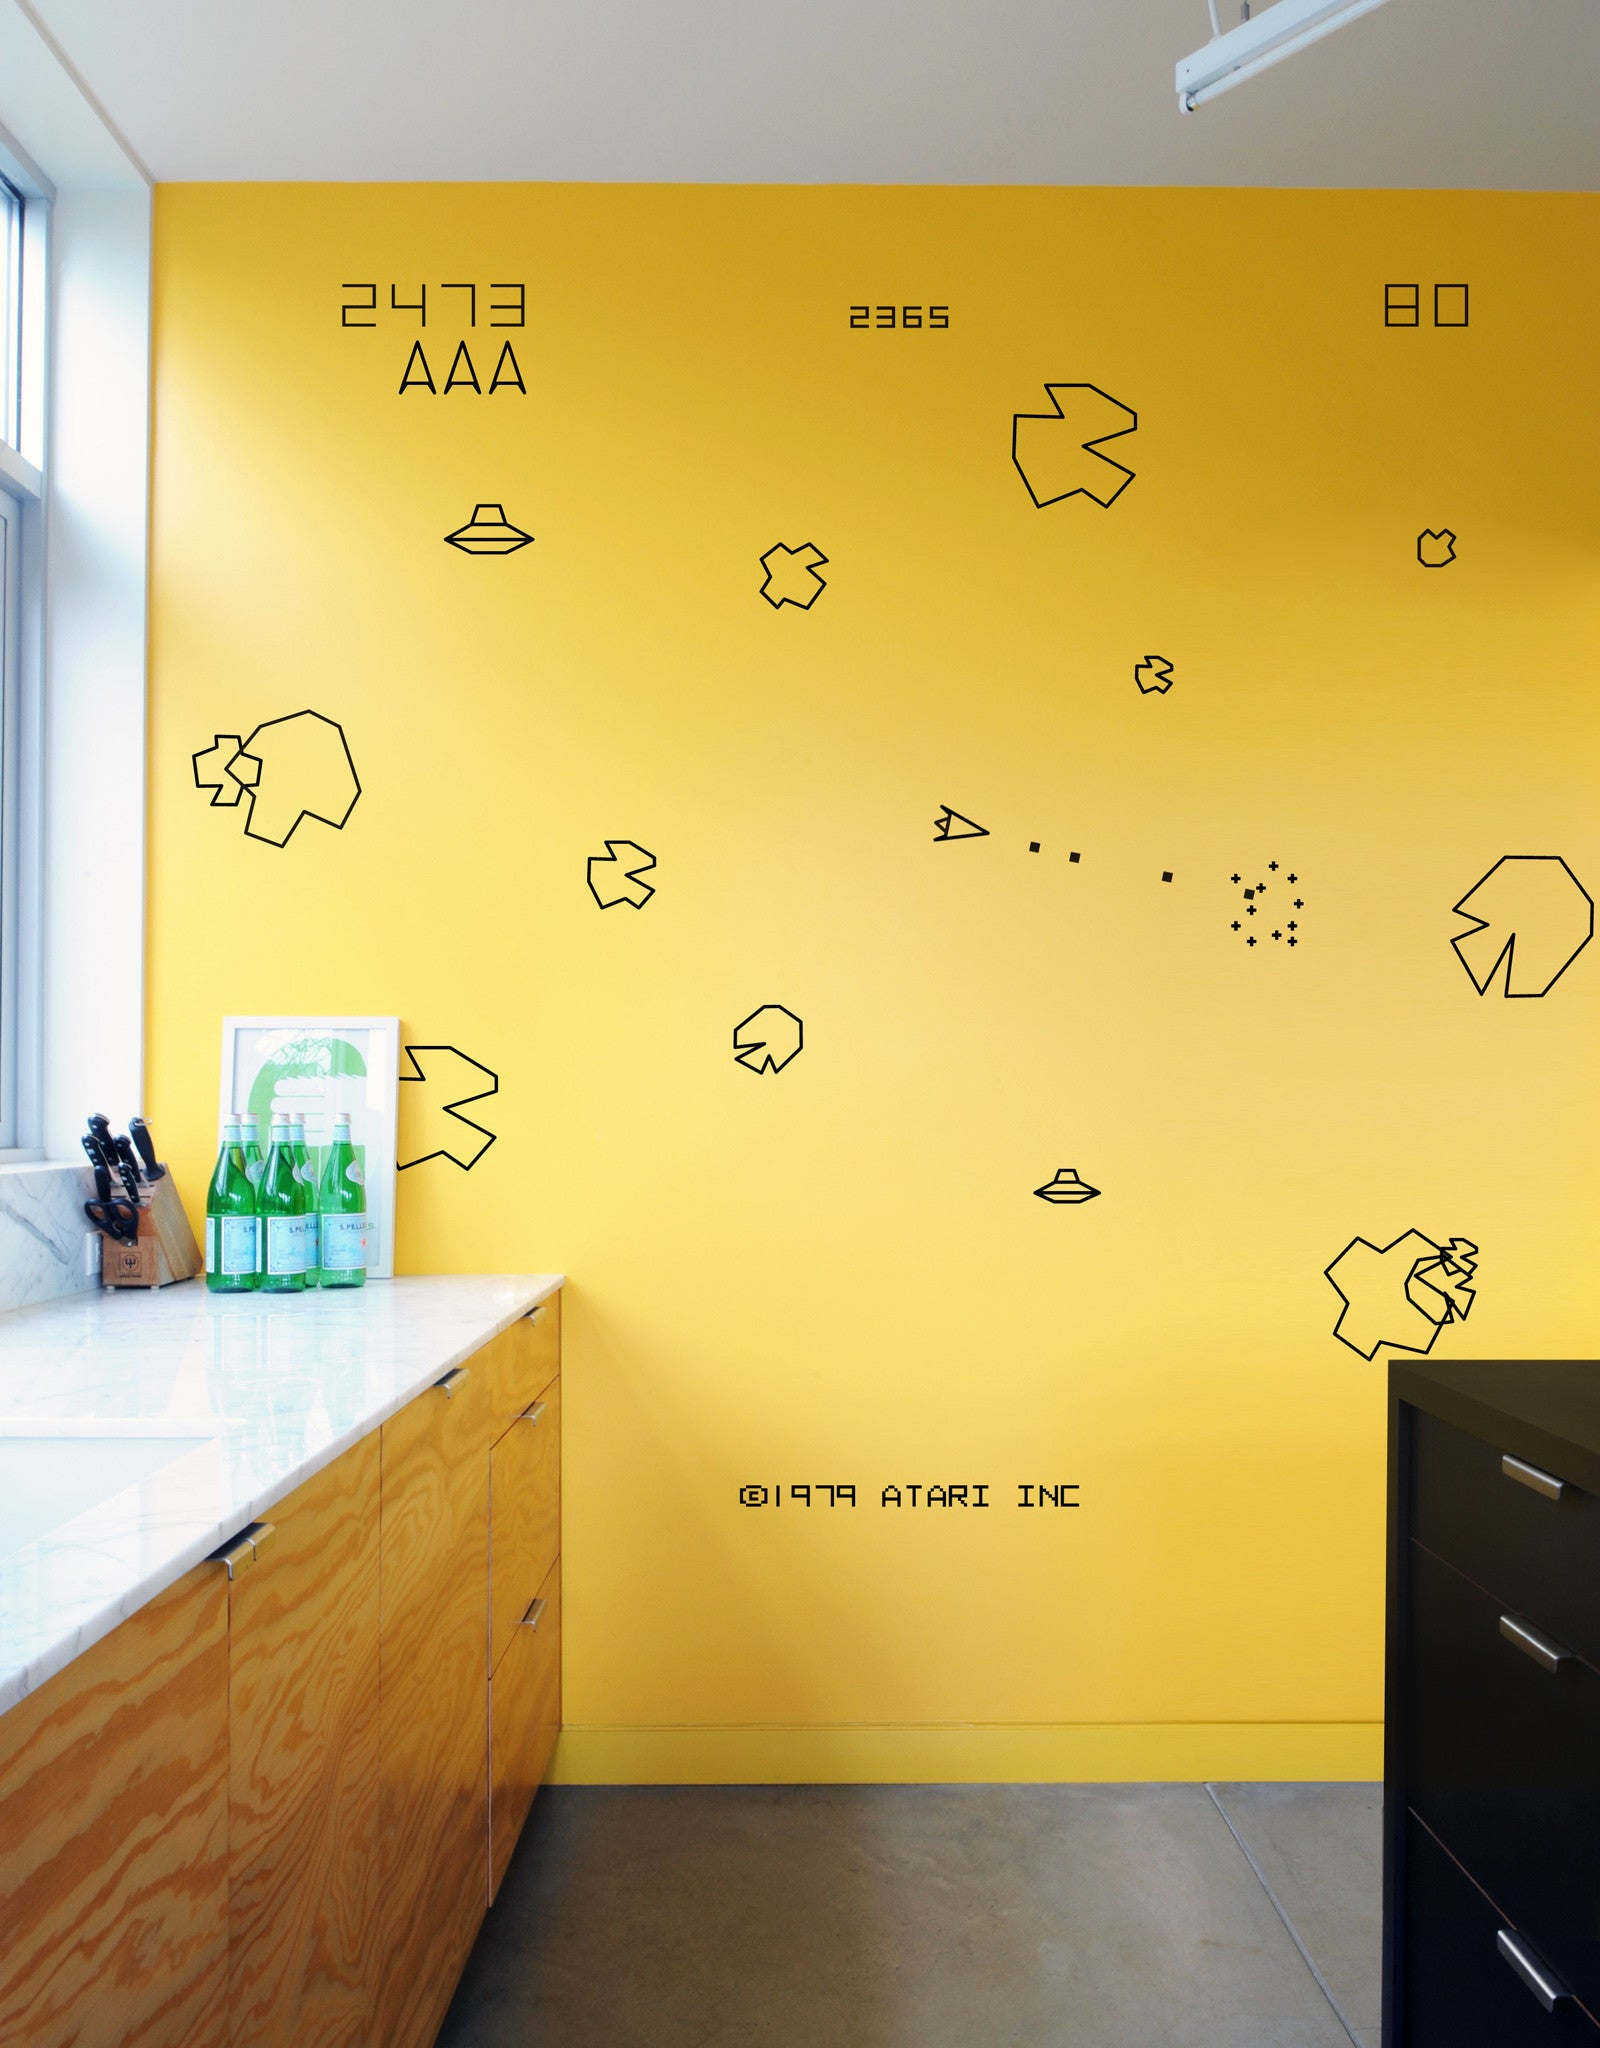 Asteroids Video Game Wall Art | Video Game Wall Art Sticker – Blik